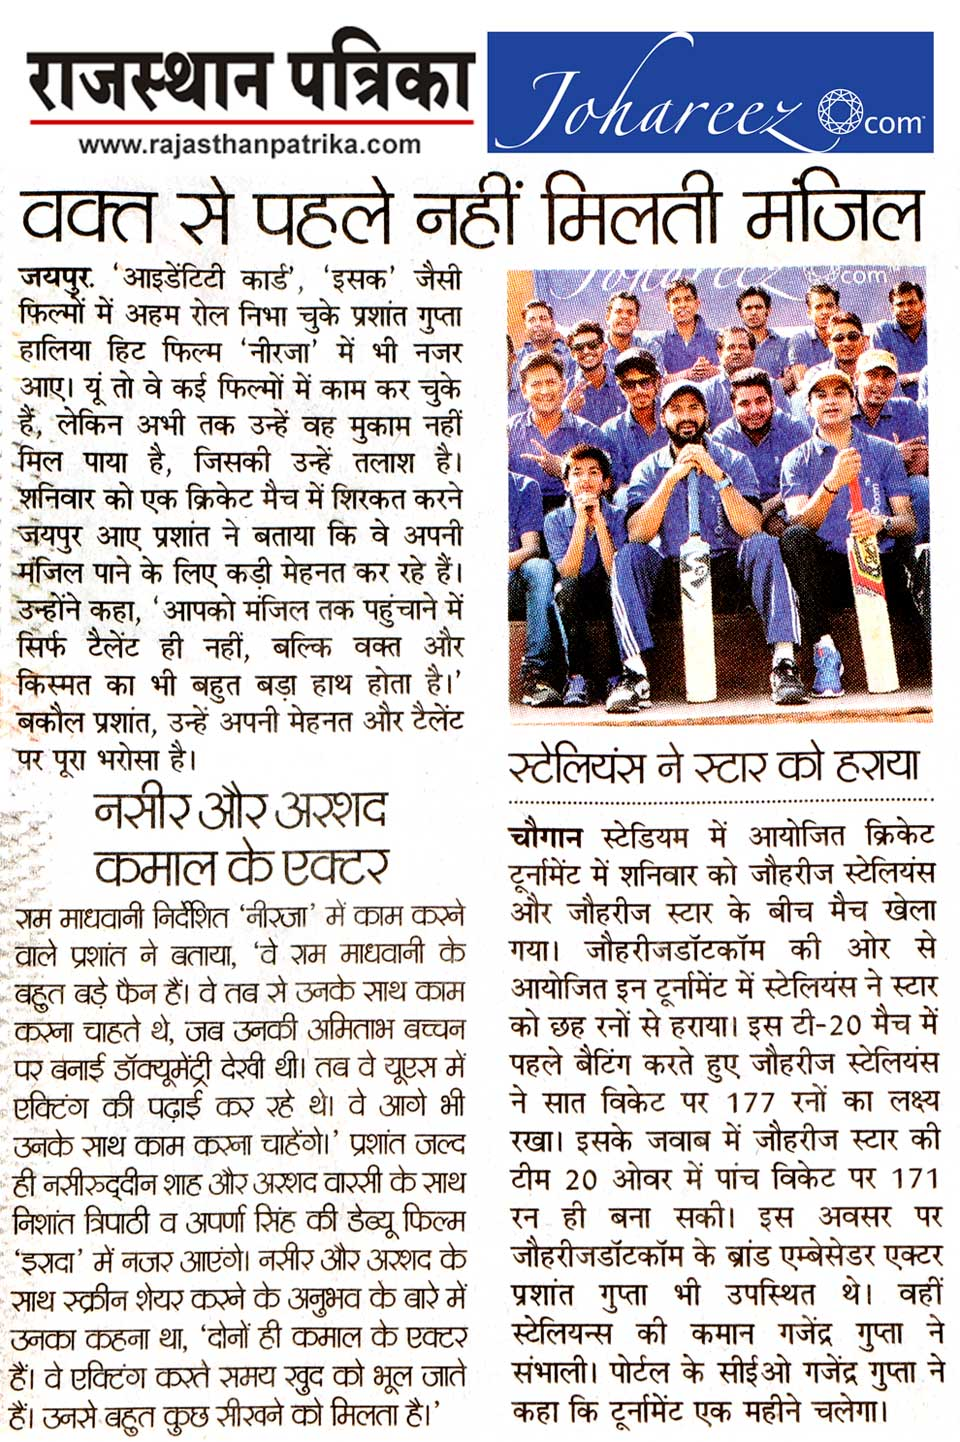 Johareez Auction Pvt. Ltd. in Rajasthan Patrika